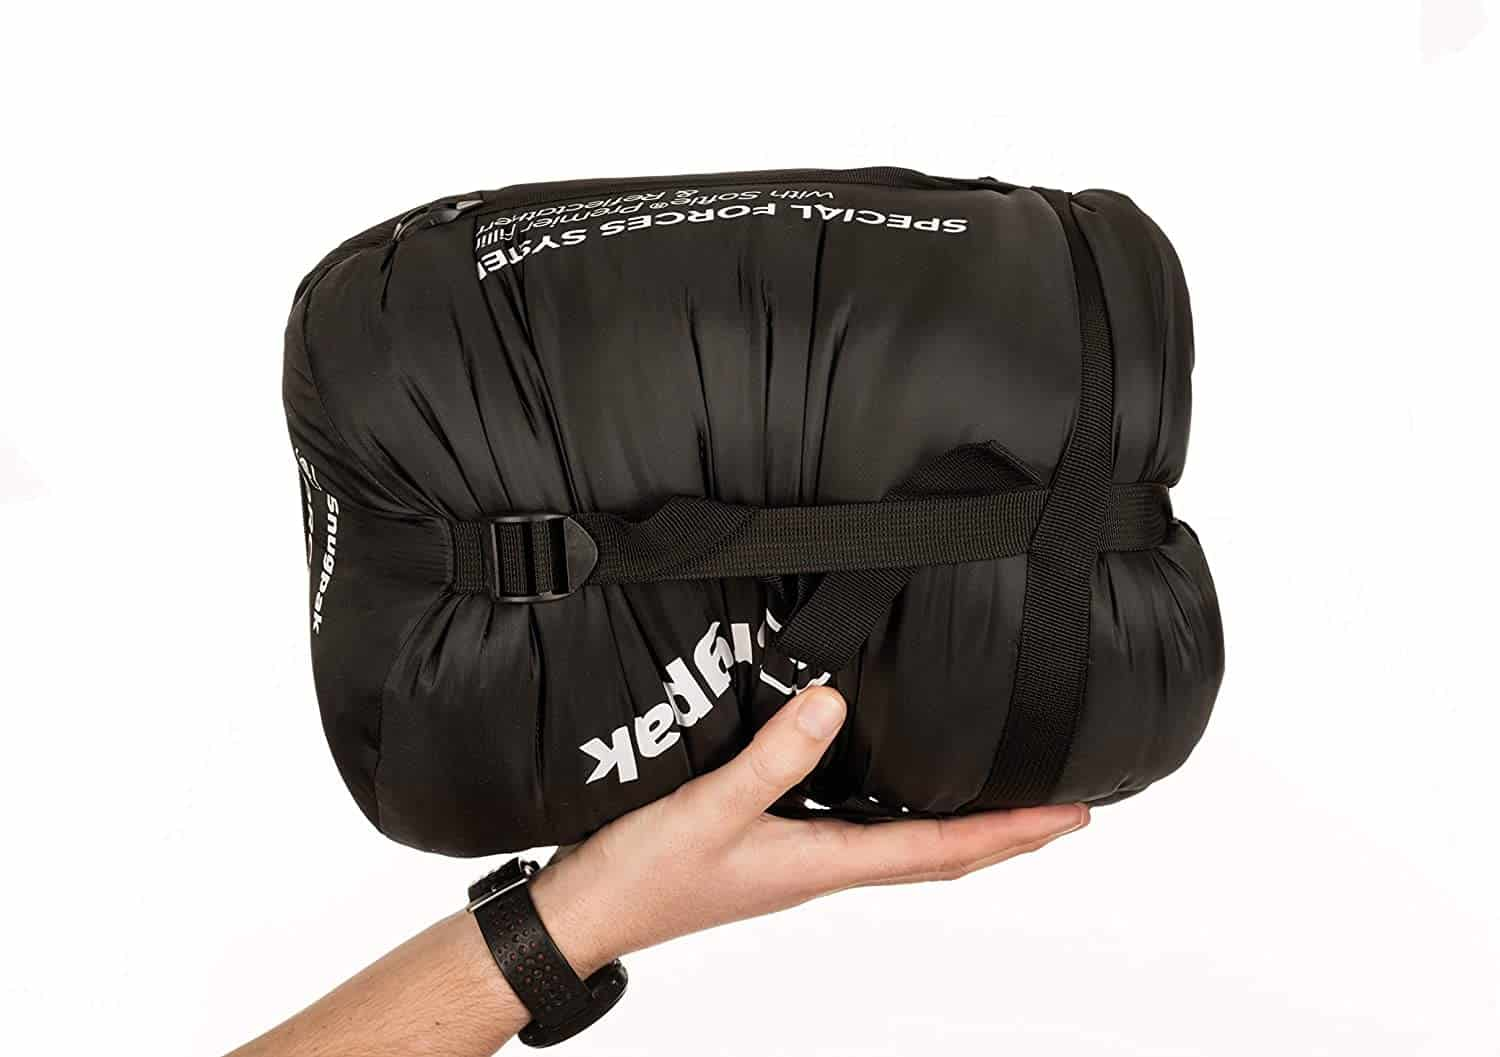 Mummy Sleeping Bag - Snugpak Special Forces Combo System 2